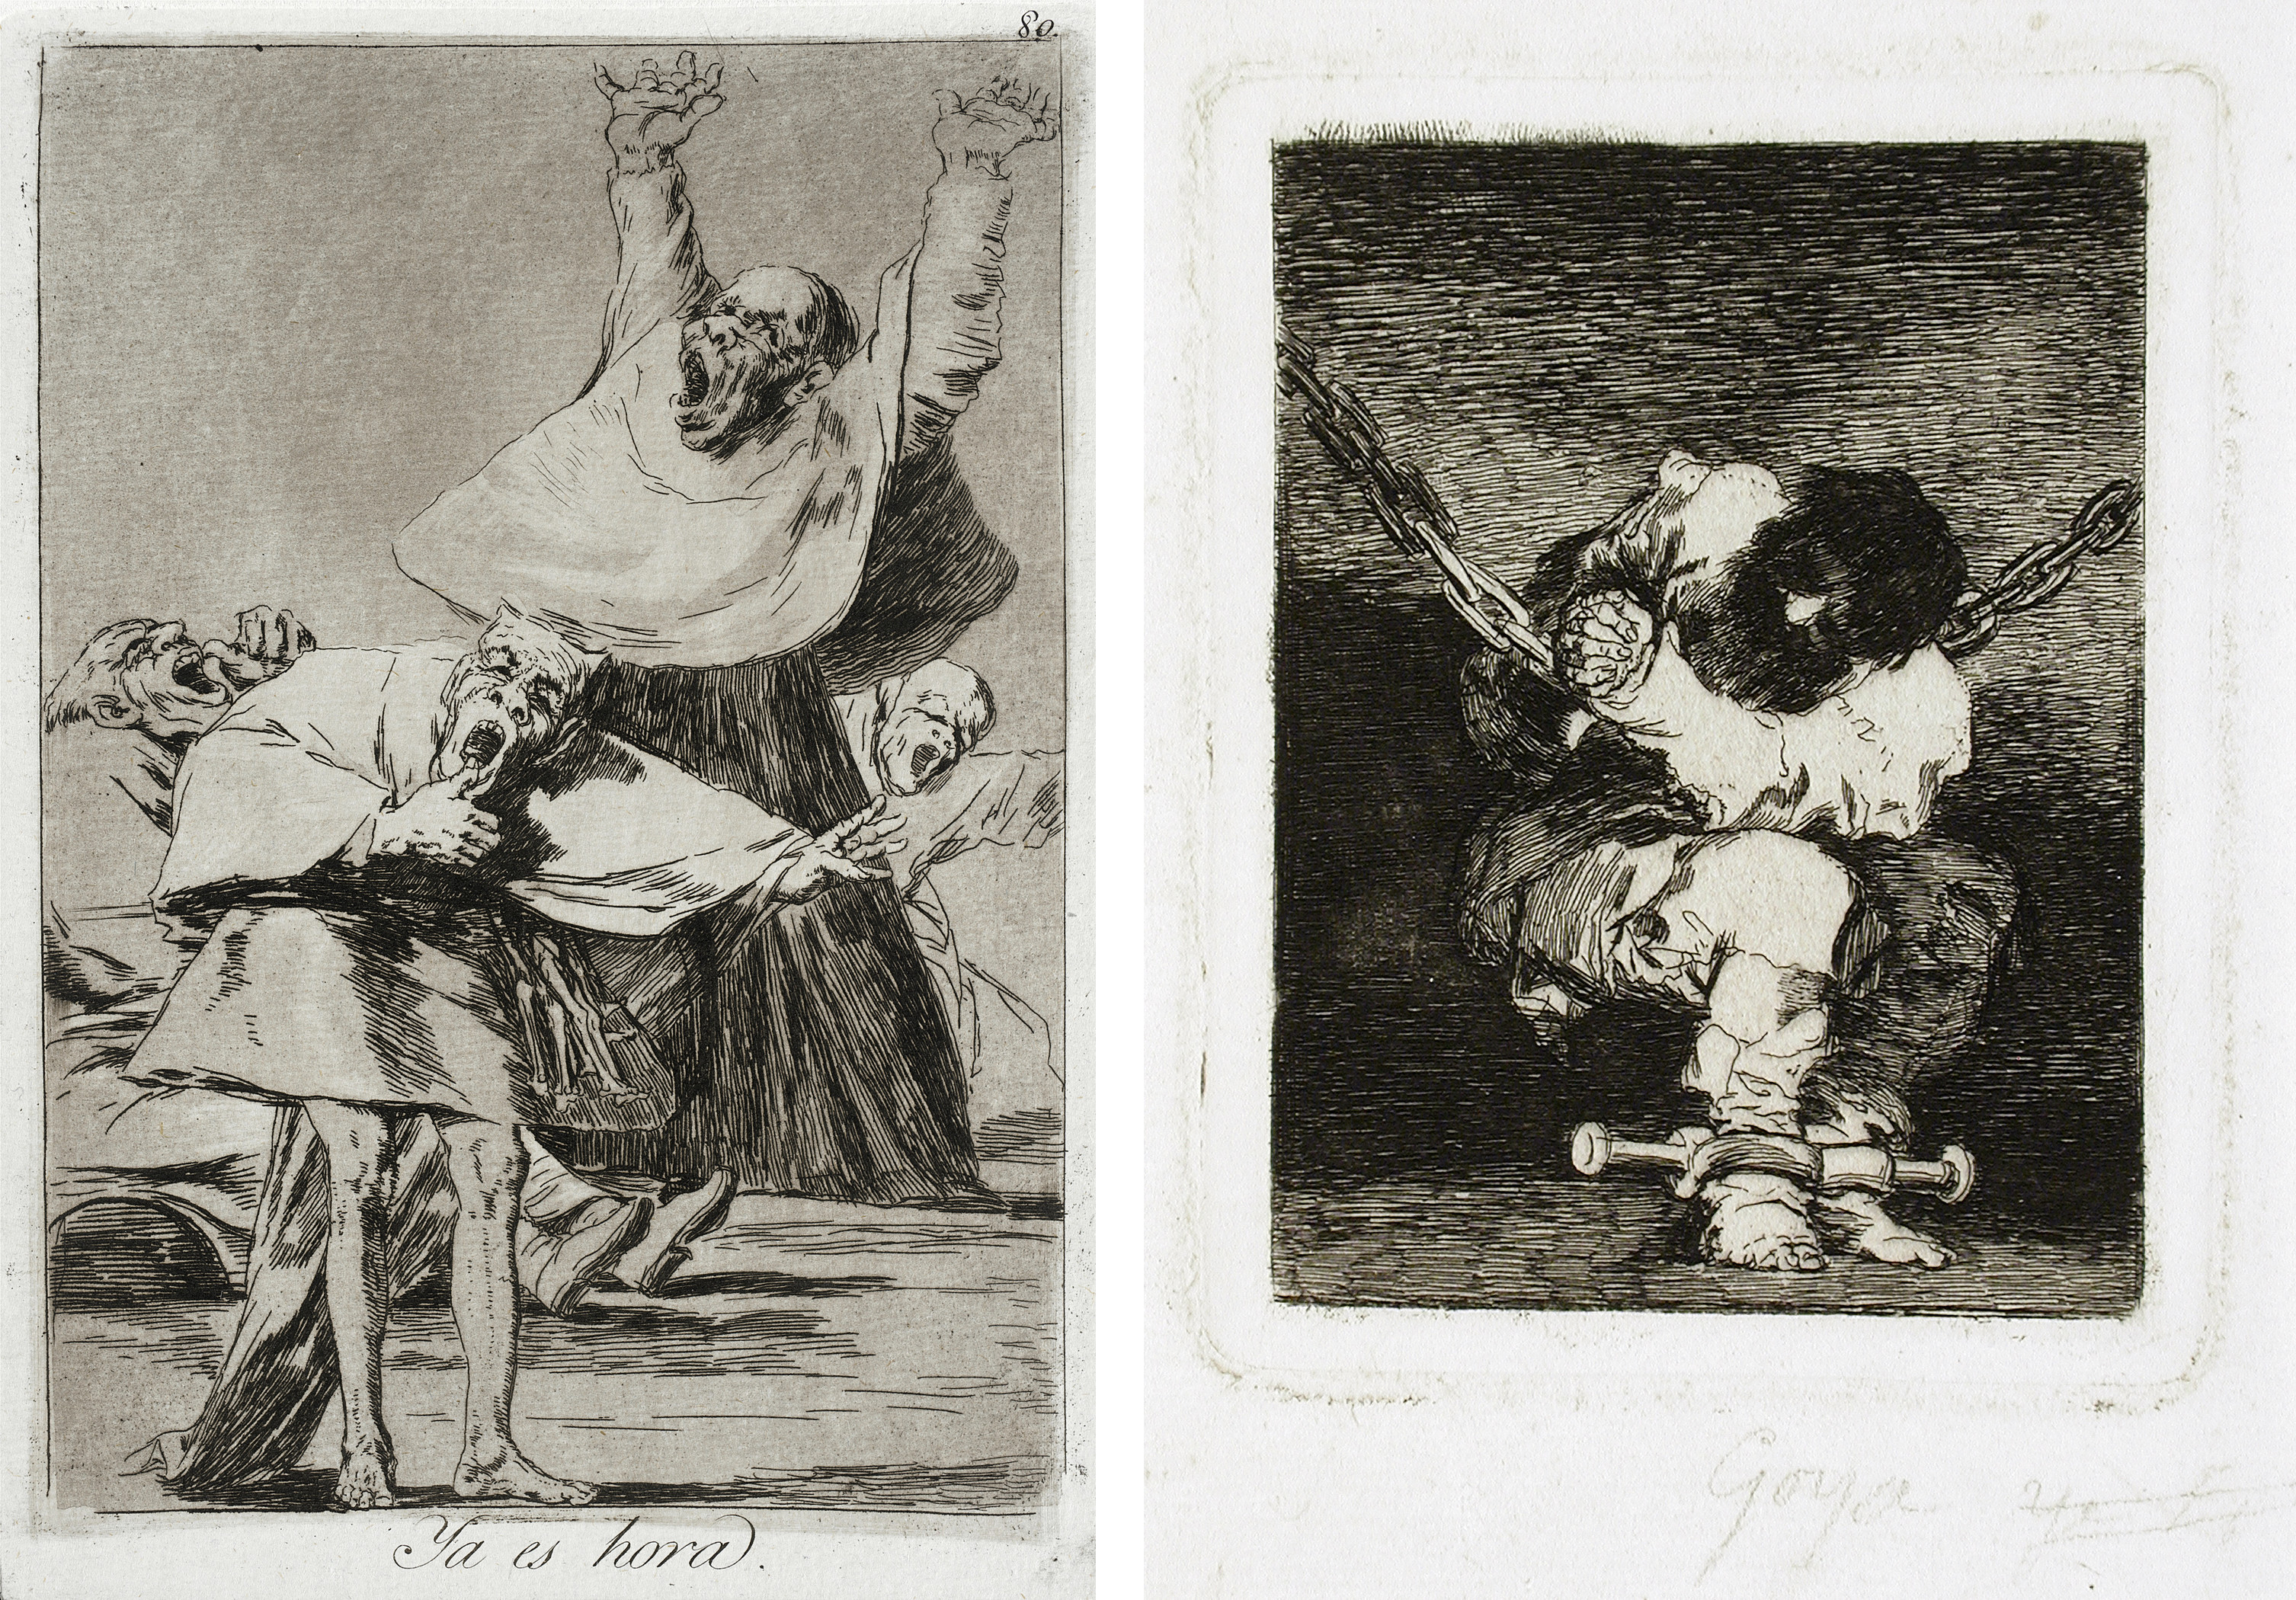 LEFT: Francisco Goya y Lucientes, It is Time, 1799, Los Angeles County Museum of Art, Paul Rodman Mabury Trust Fund,  photo © Museum Associates/LACMA; RIGHT: Francisco Goya y Lucientes, The Little Prisoner, c. 1810–14, Los Angeles County Museum of Art, Graphic Arts Council Fund in memory of Charles White, photo © Museum Associates/LACMA